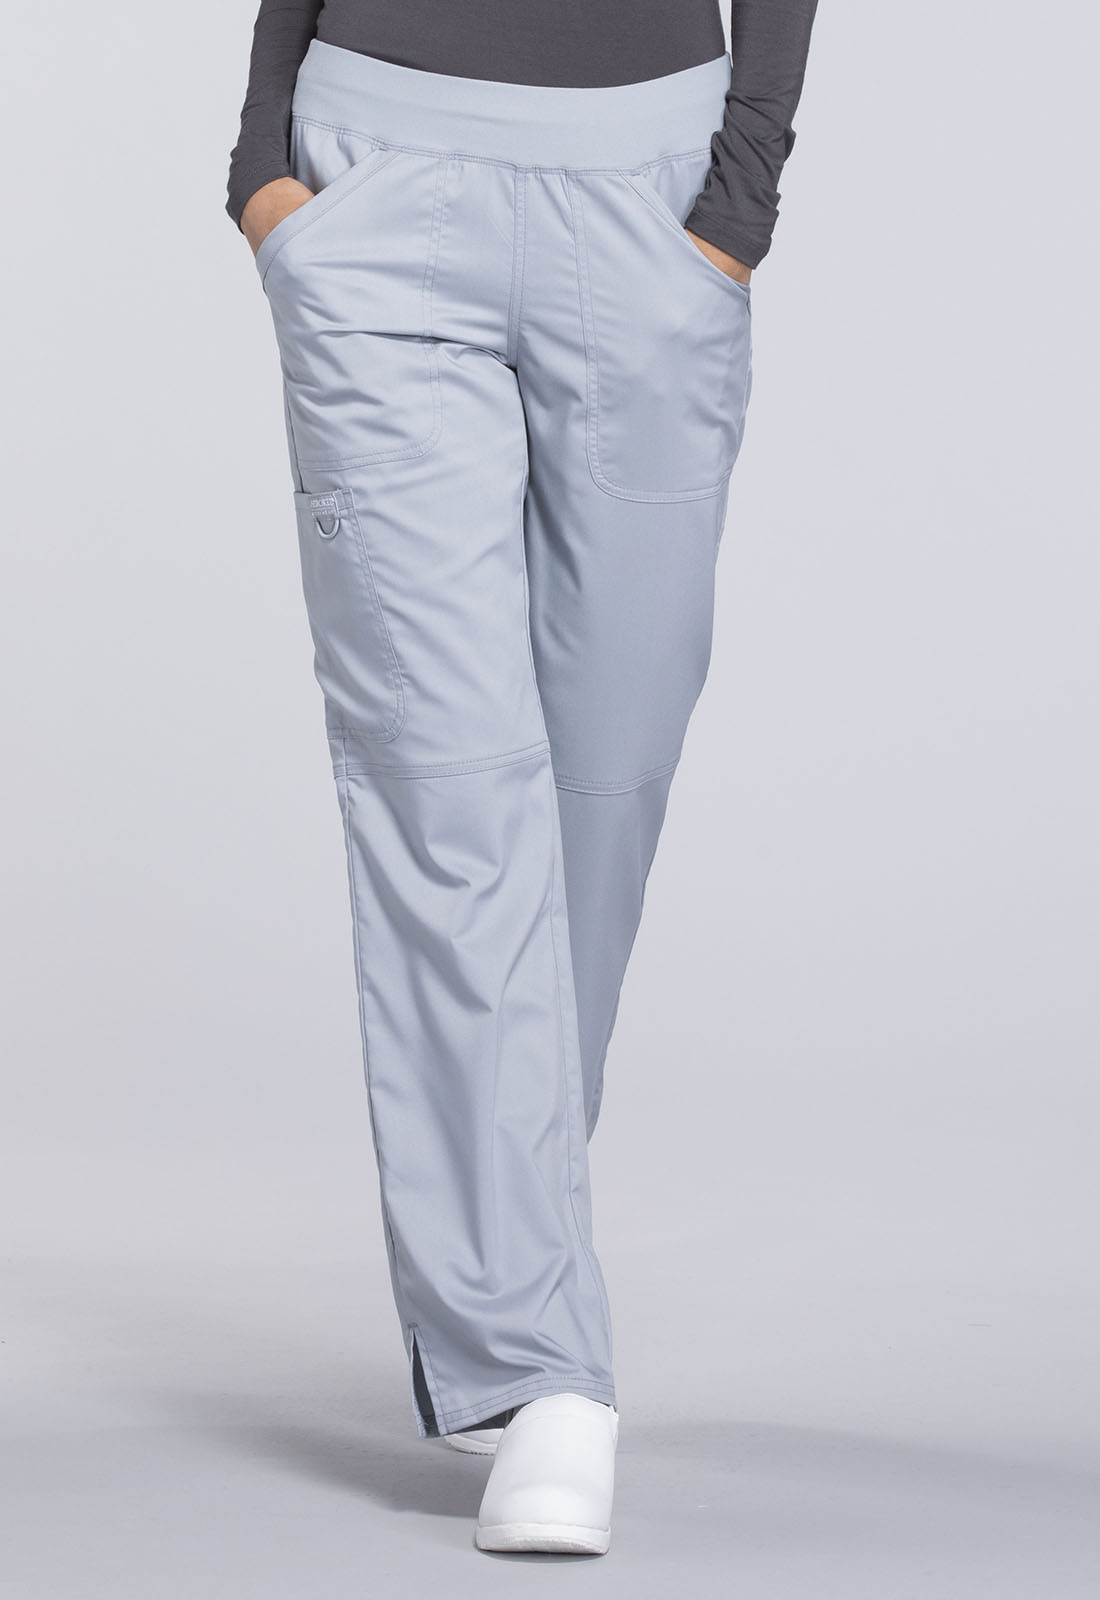 83ee16a7710 Cherokee Workwear. WW Revolution Mid Rise Straight Leg Pull-on Pant in Grey  (Petite)